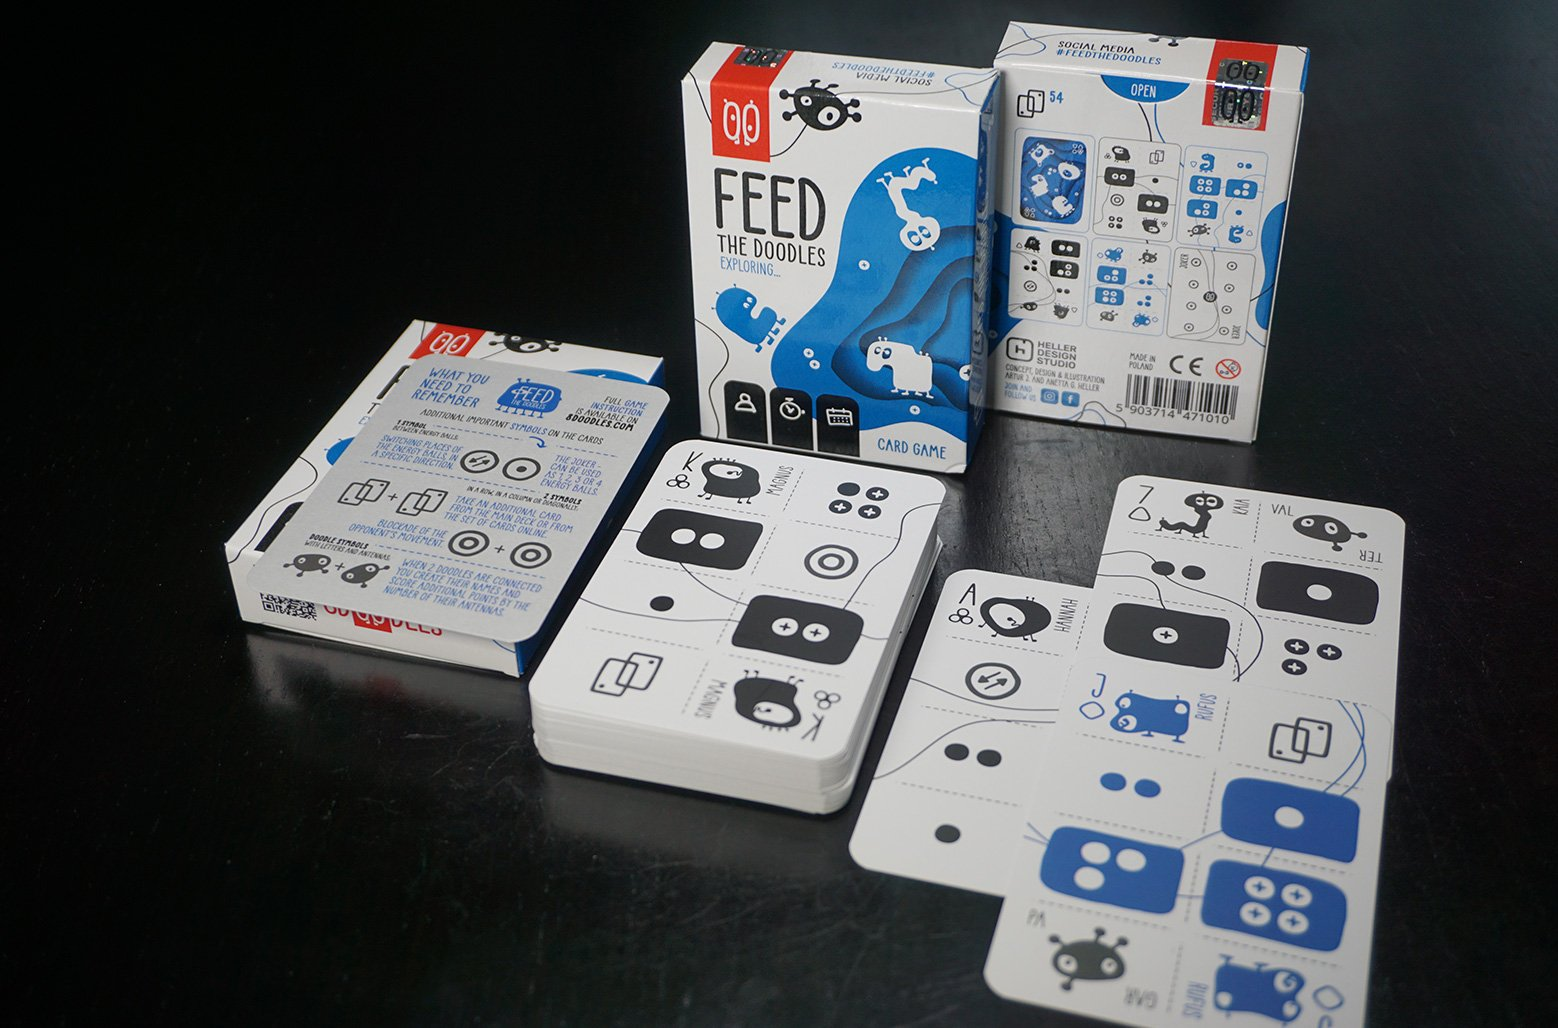 info-box-card-game-feed-the-doodles-blue-box-2